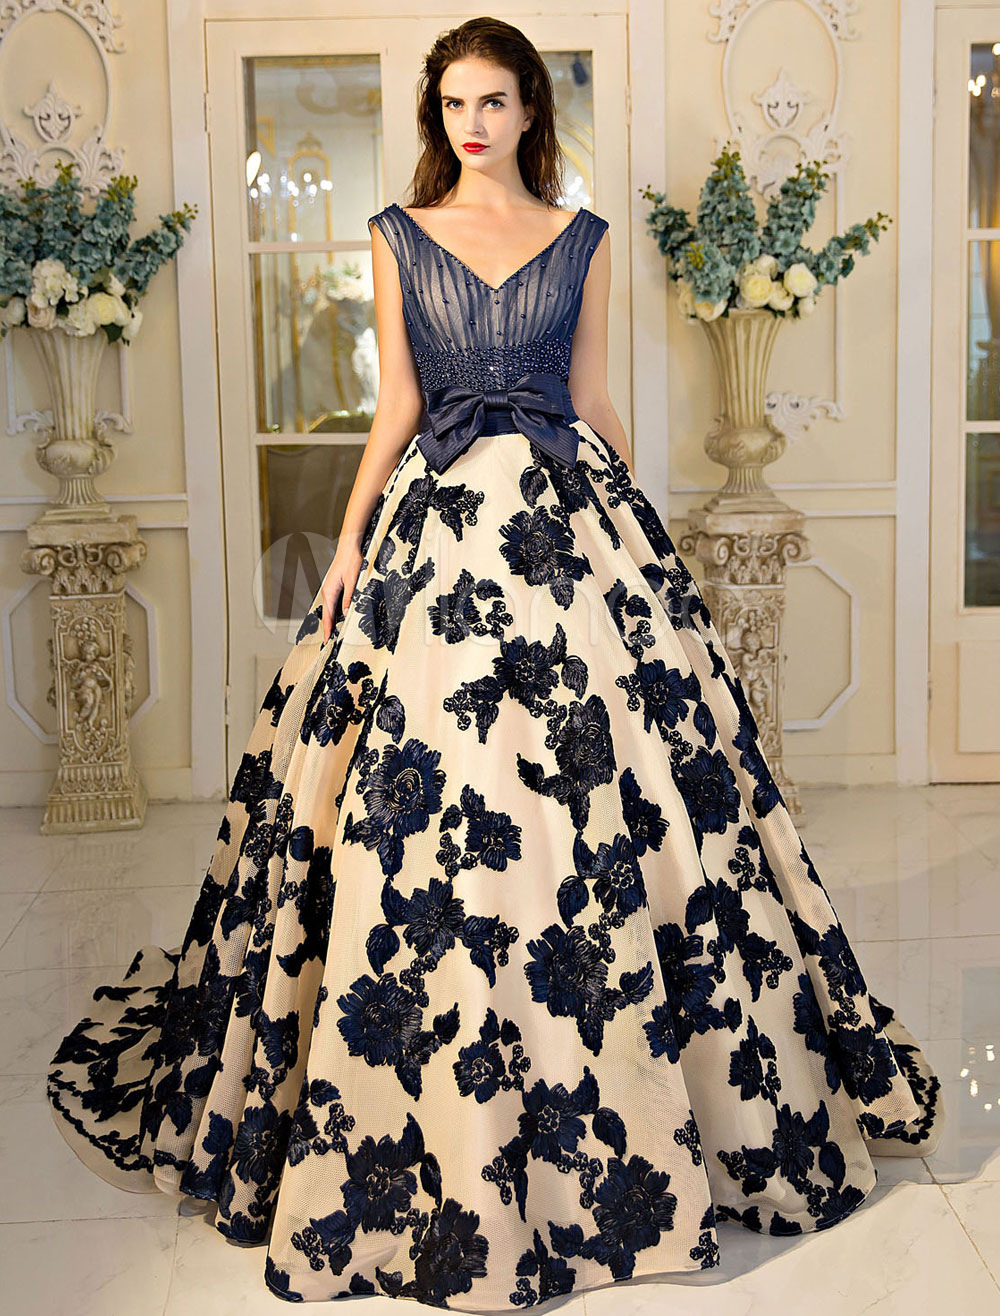 Buy Princess Quinceanera Dresses Luxury Lace Applique Beading V Neck Dark Navy Bows Women's Pageant Dress With Train for $314.49 in Milanoo store